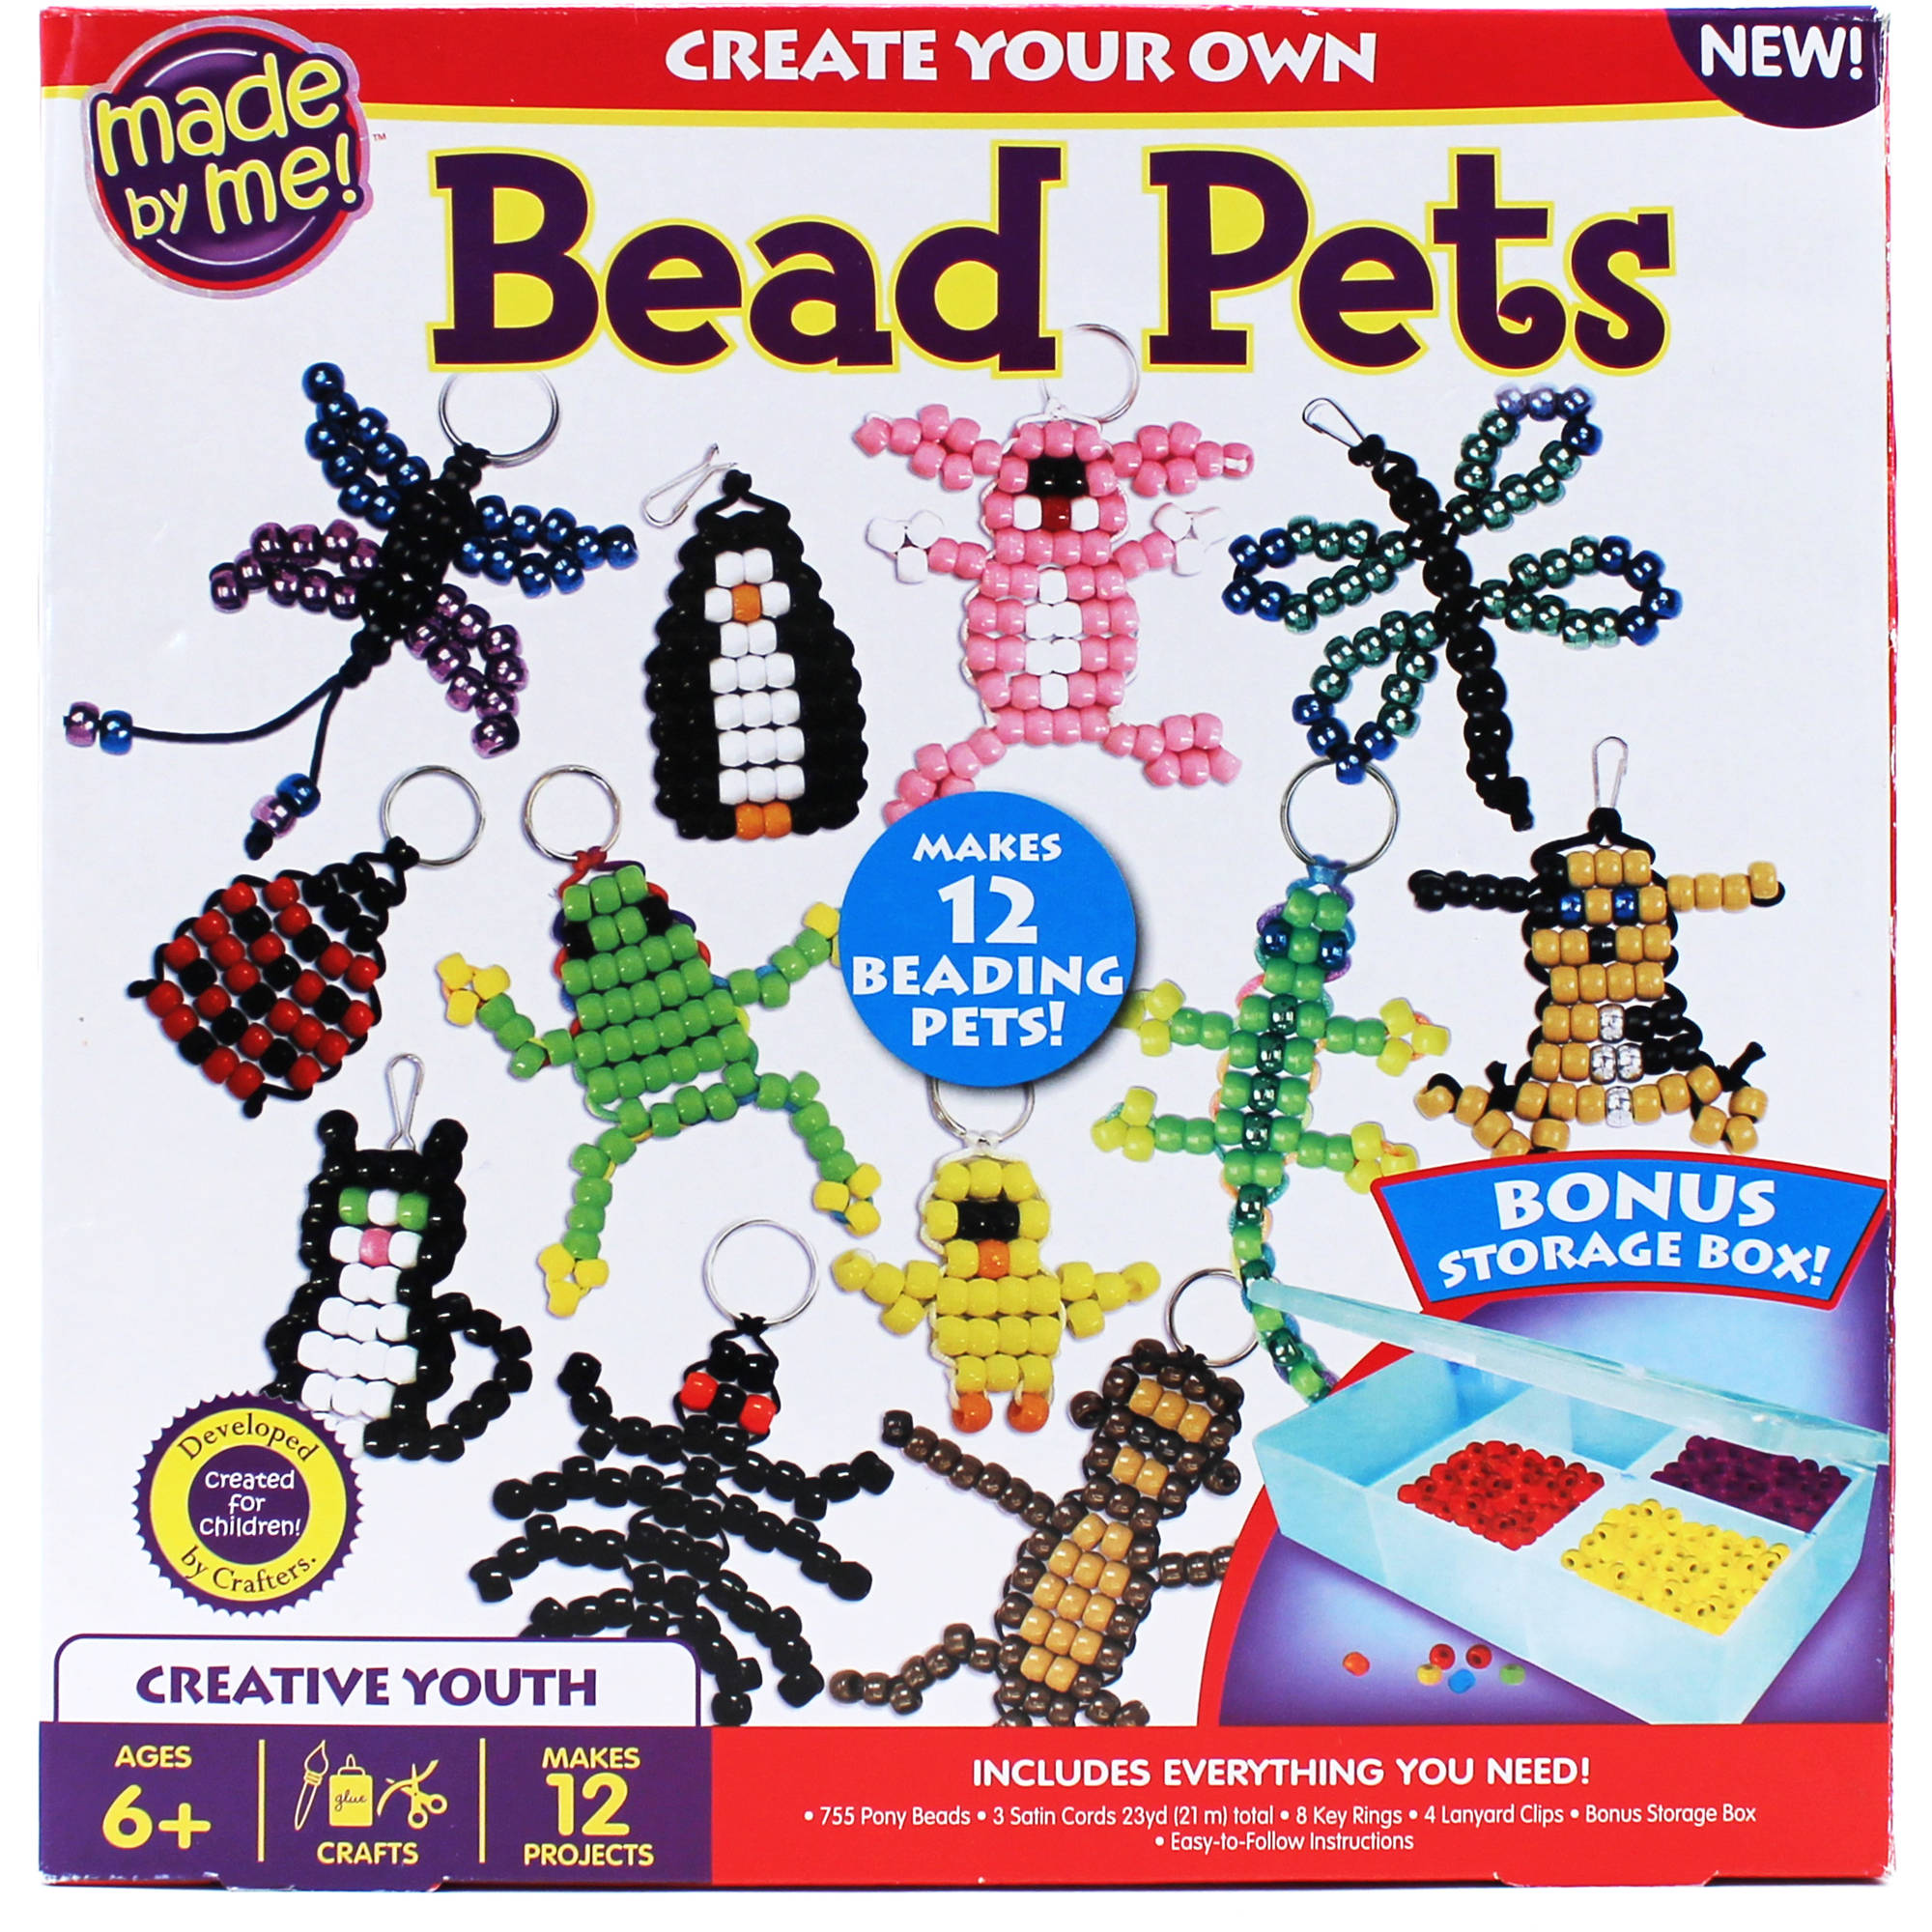 Made By Me Bead Pets Craft Kit by Horizon Group USA